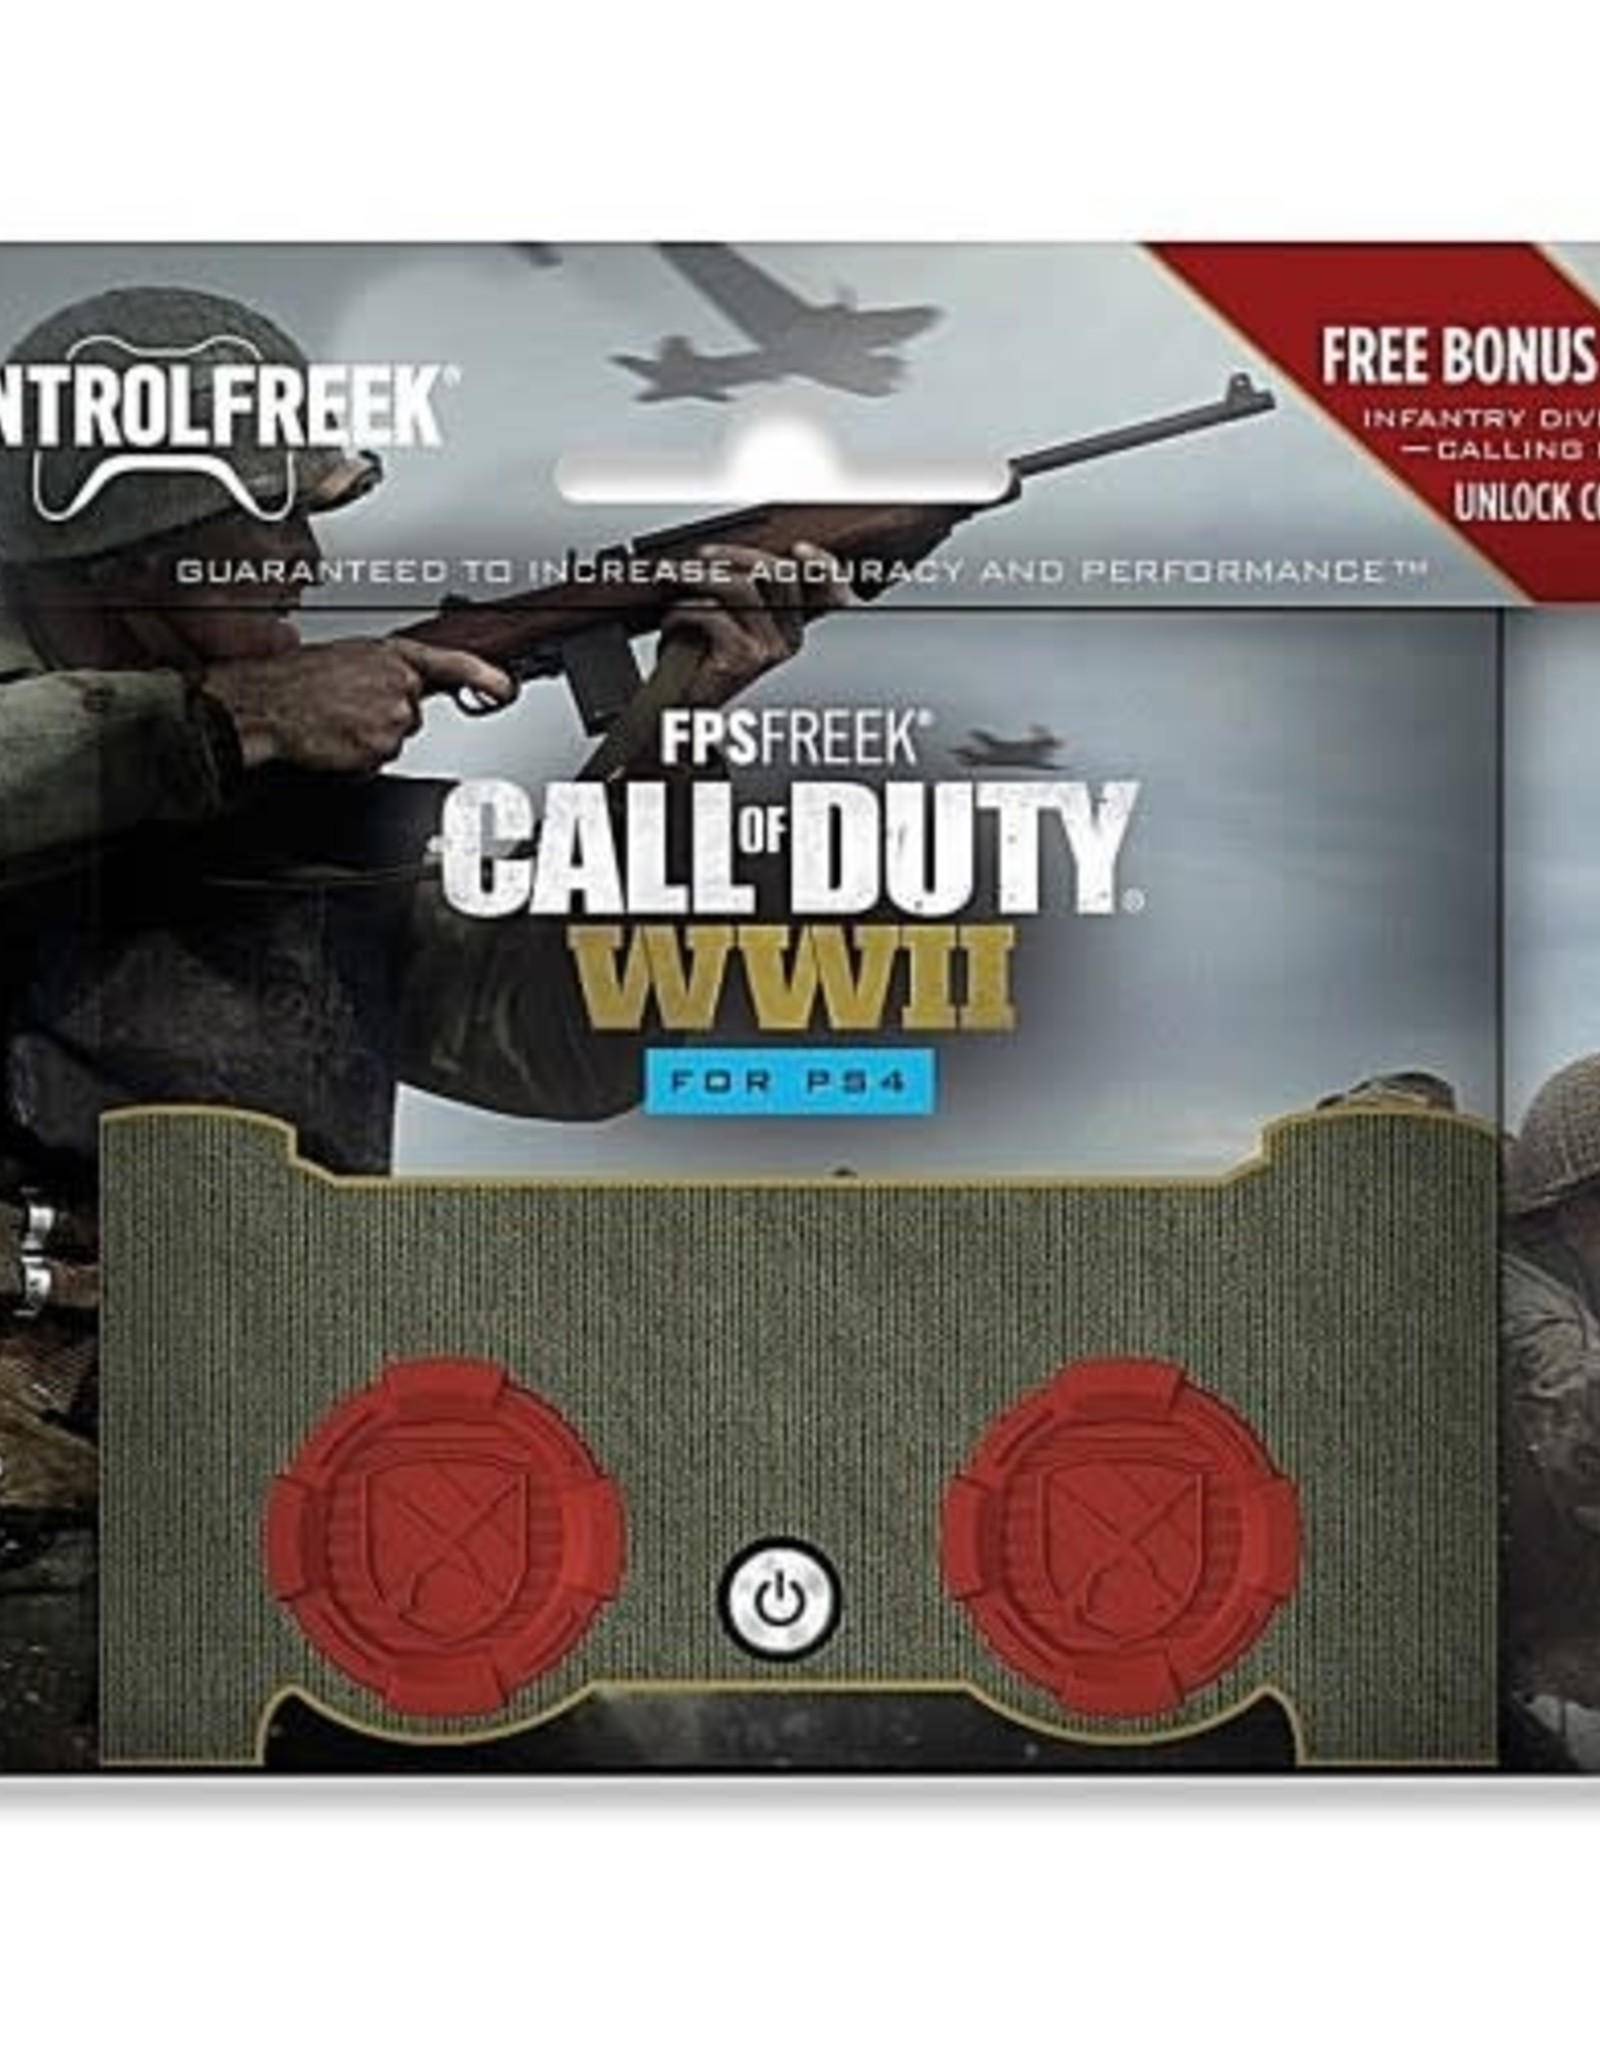 KontrolFreek PS4 FPS Call of Duty MW A D S 2 High Rise Thumb Grip Analog Cover